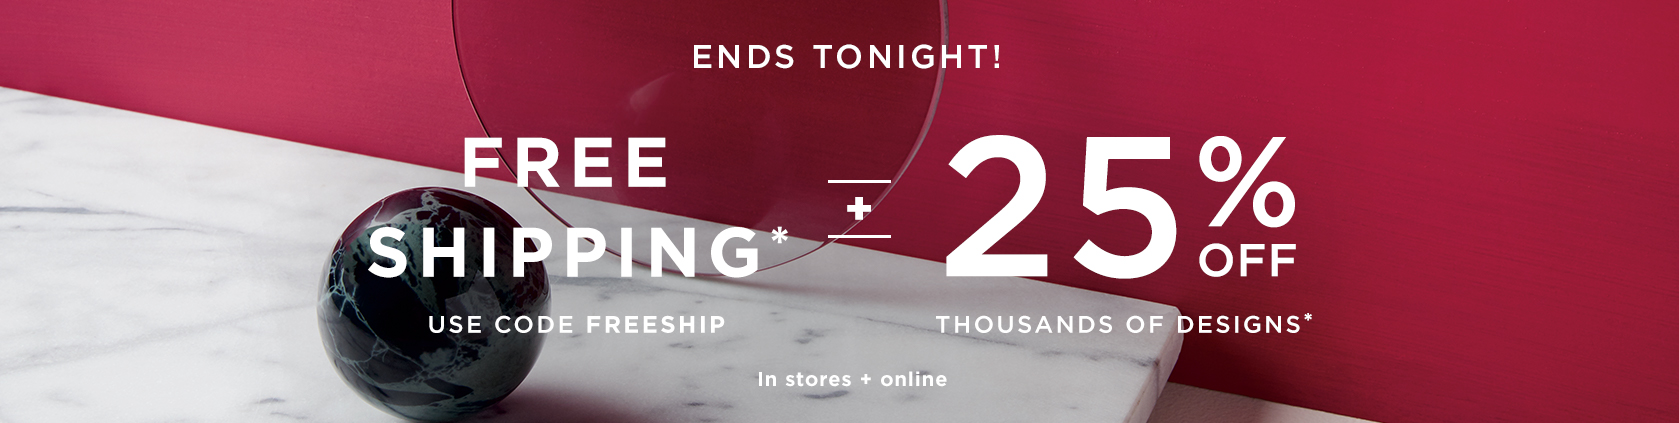 Ends Tonight! Free Shipping with code FREESHIP + 25% Off Thousands Of Designs